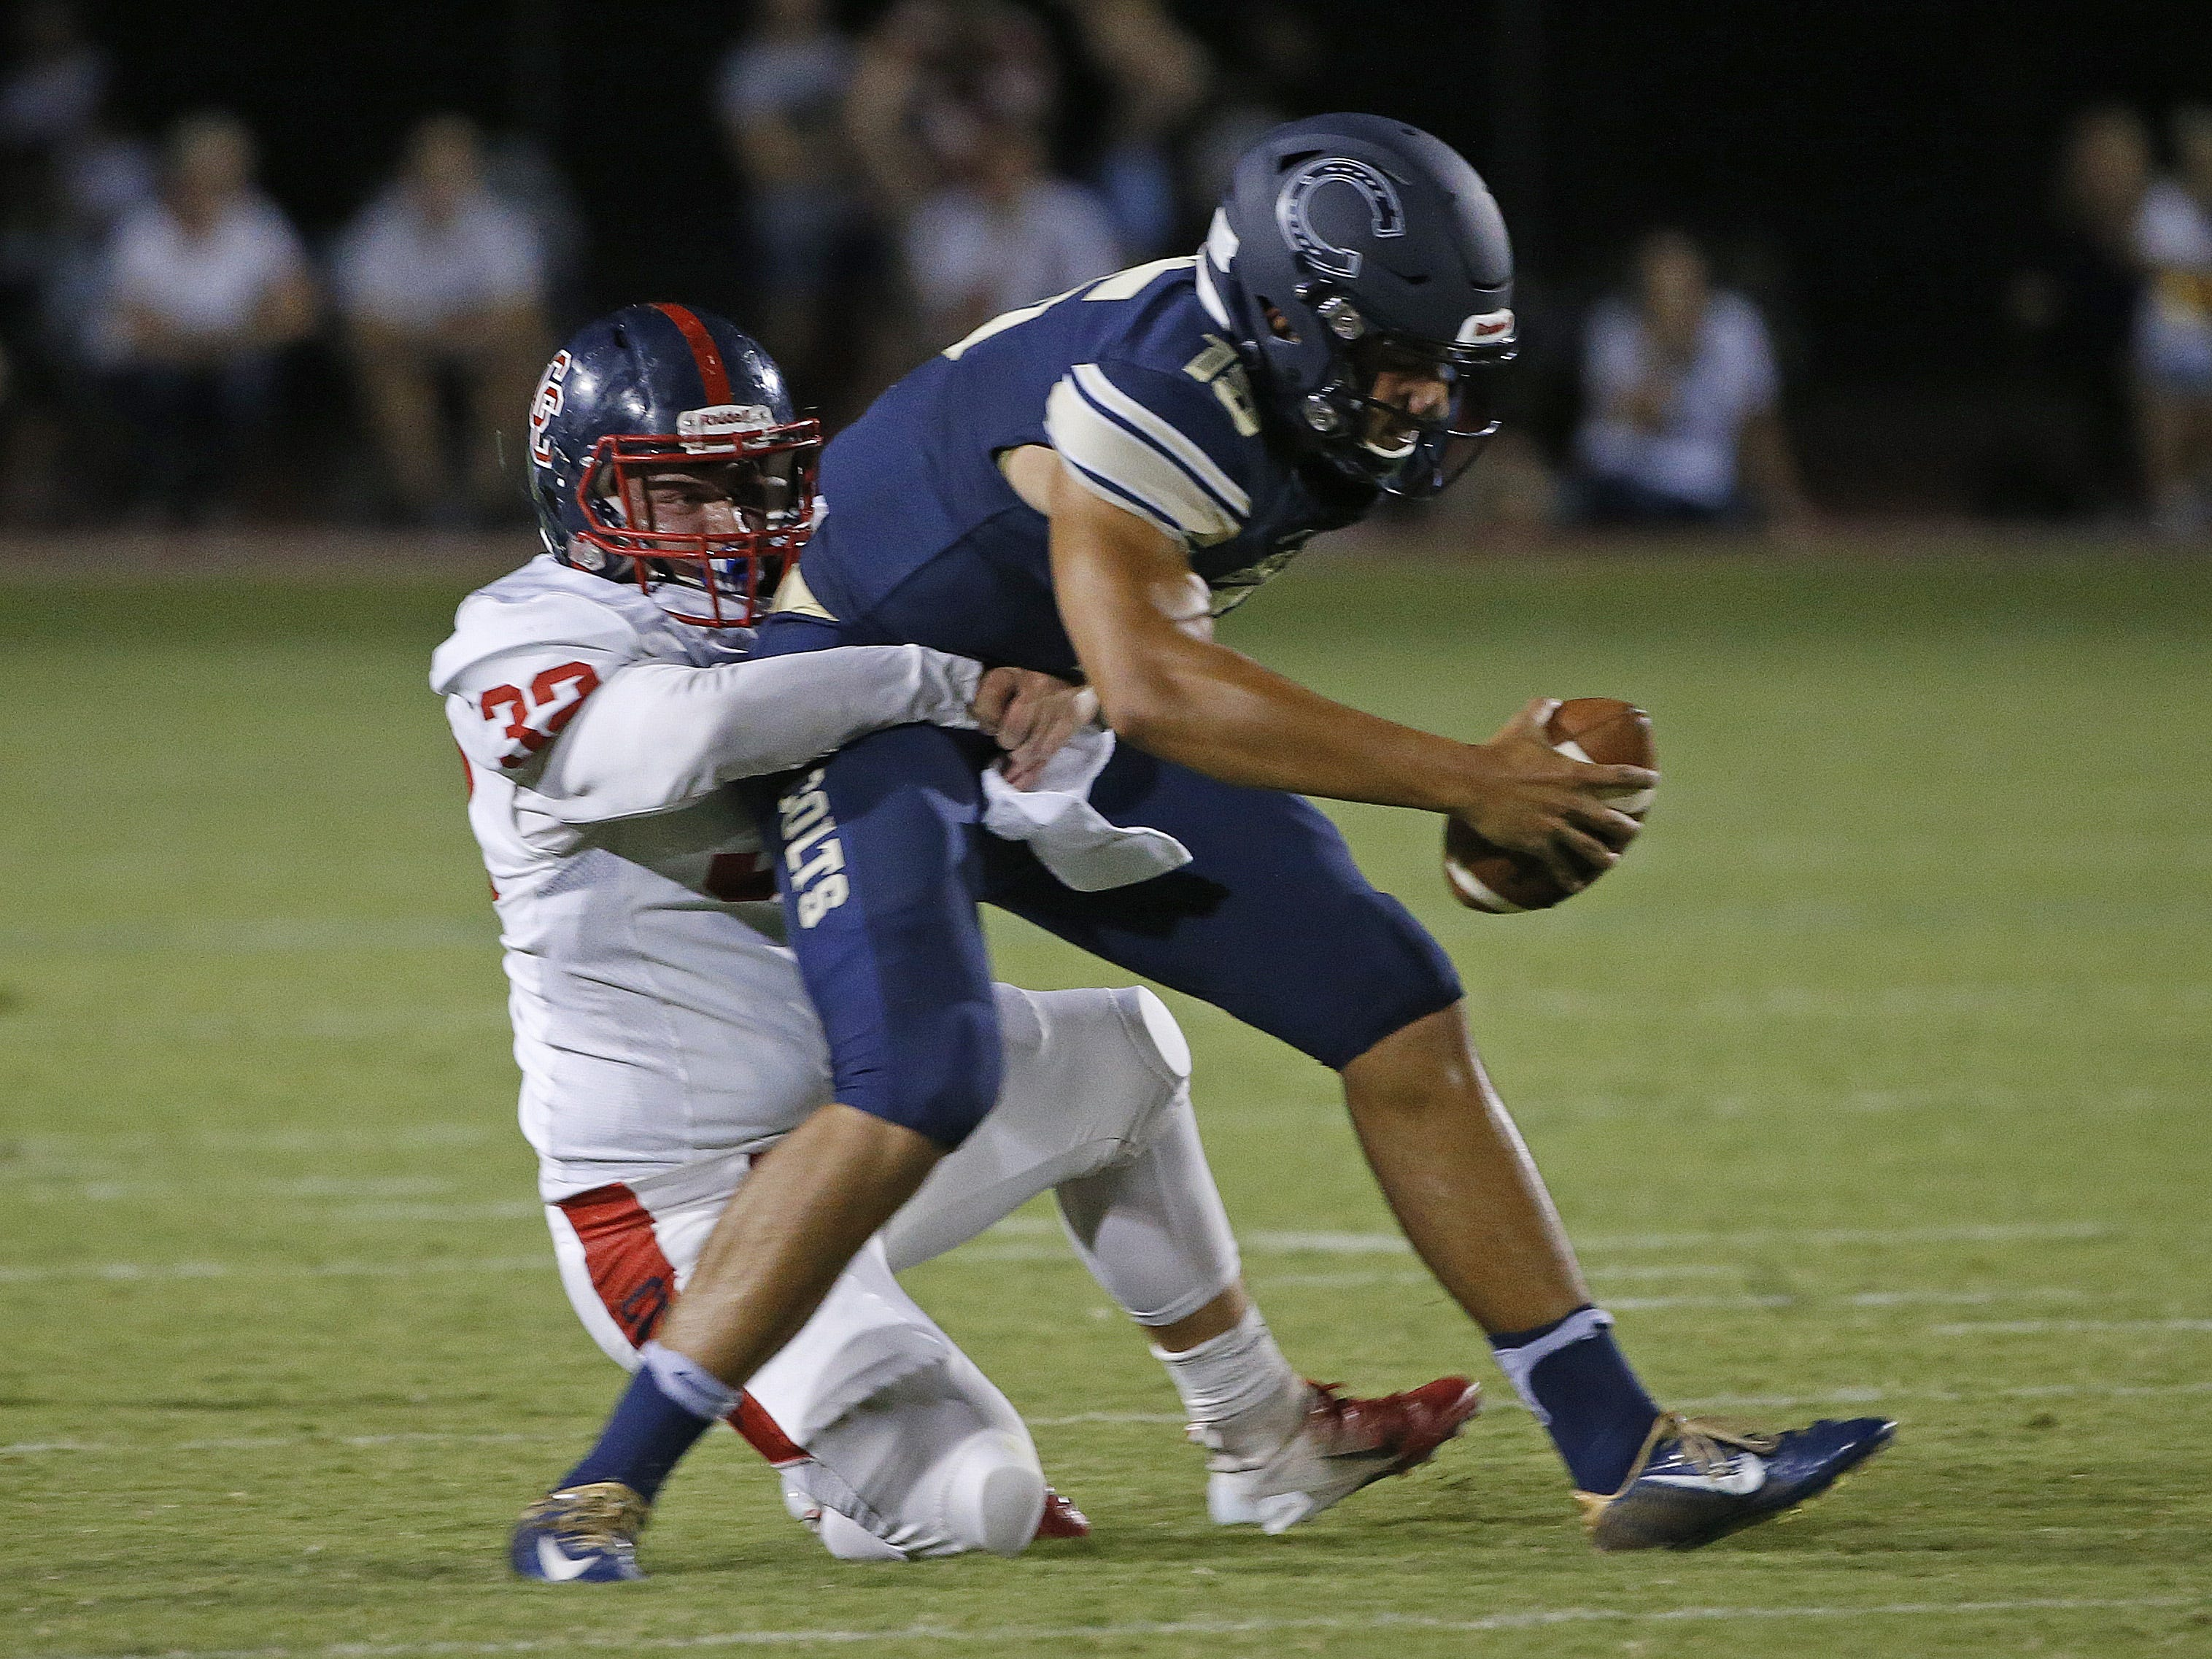 Centennial's Connor Knudsen (32) sacks Casteel's Gunner Cruz (15) during the first half at Casteel High School in Queen Creek, Ariz. on Aug. 17, 2018.